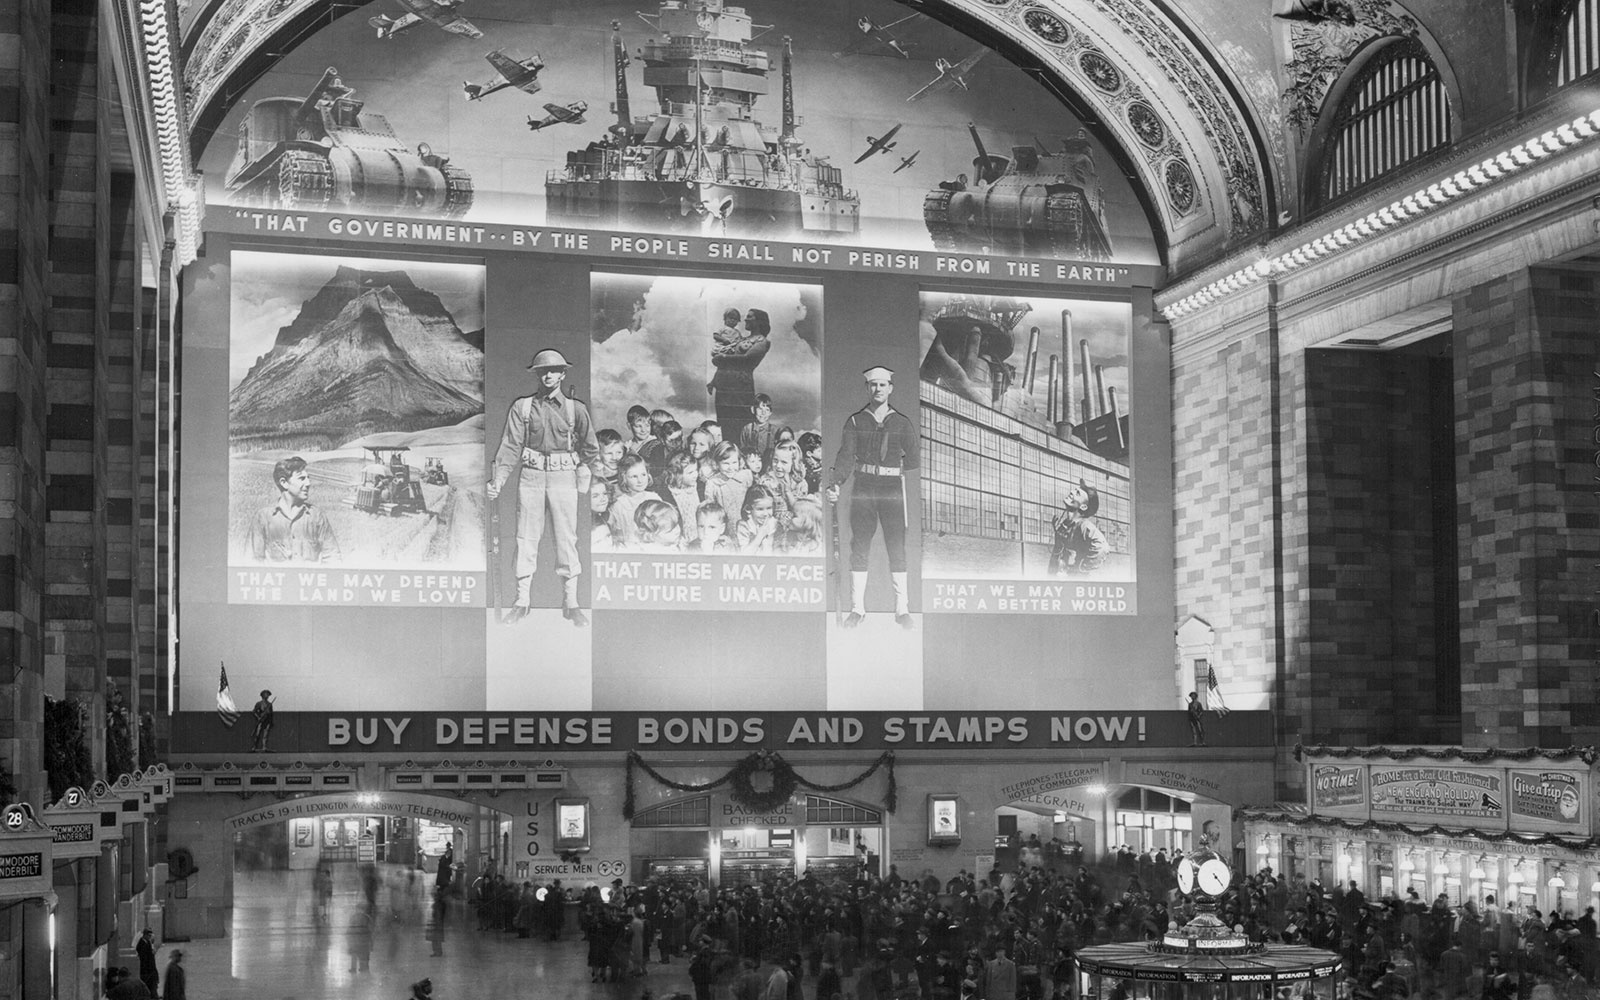 Transport Yourself Back to New York City's Grand Central Station in the 1940s